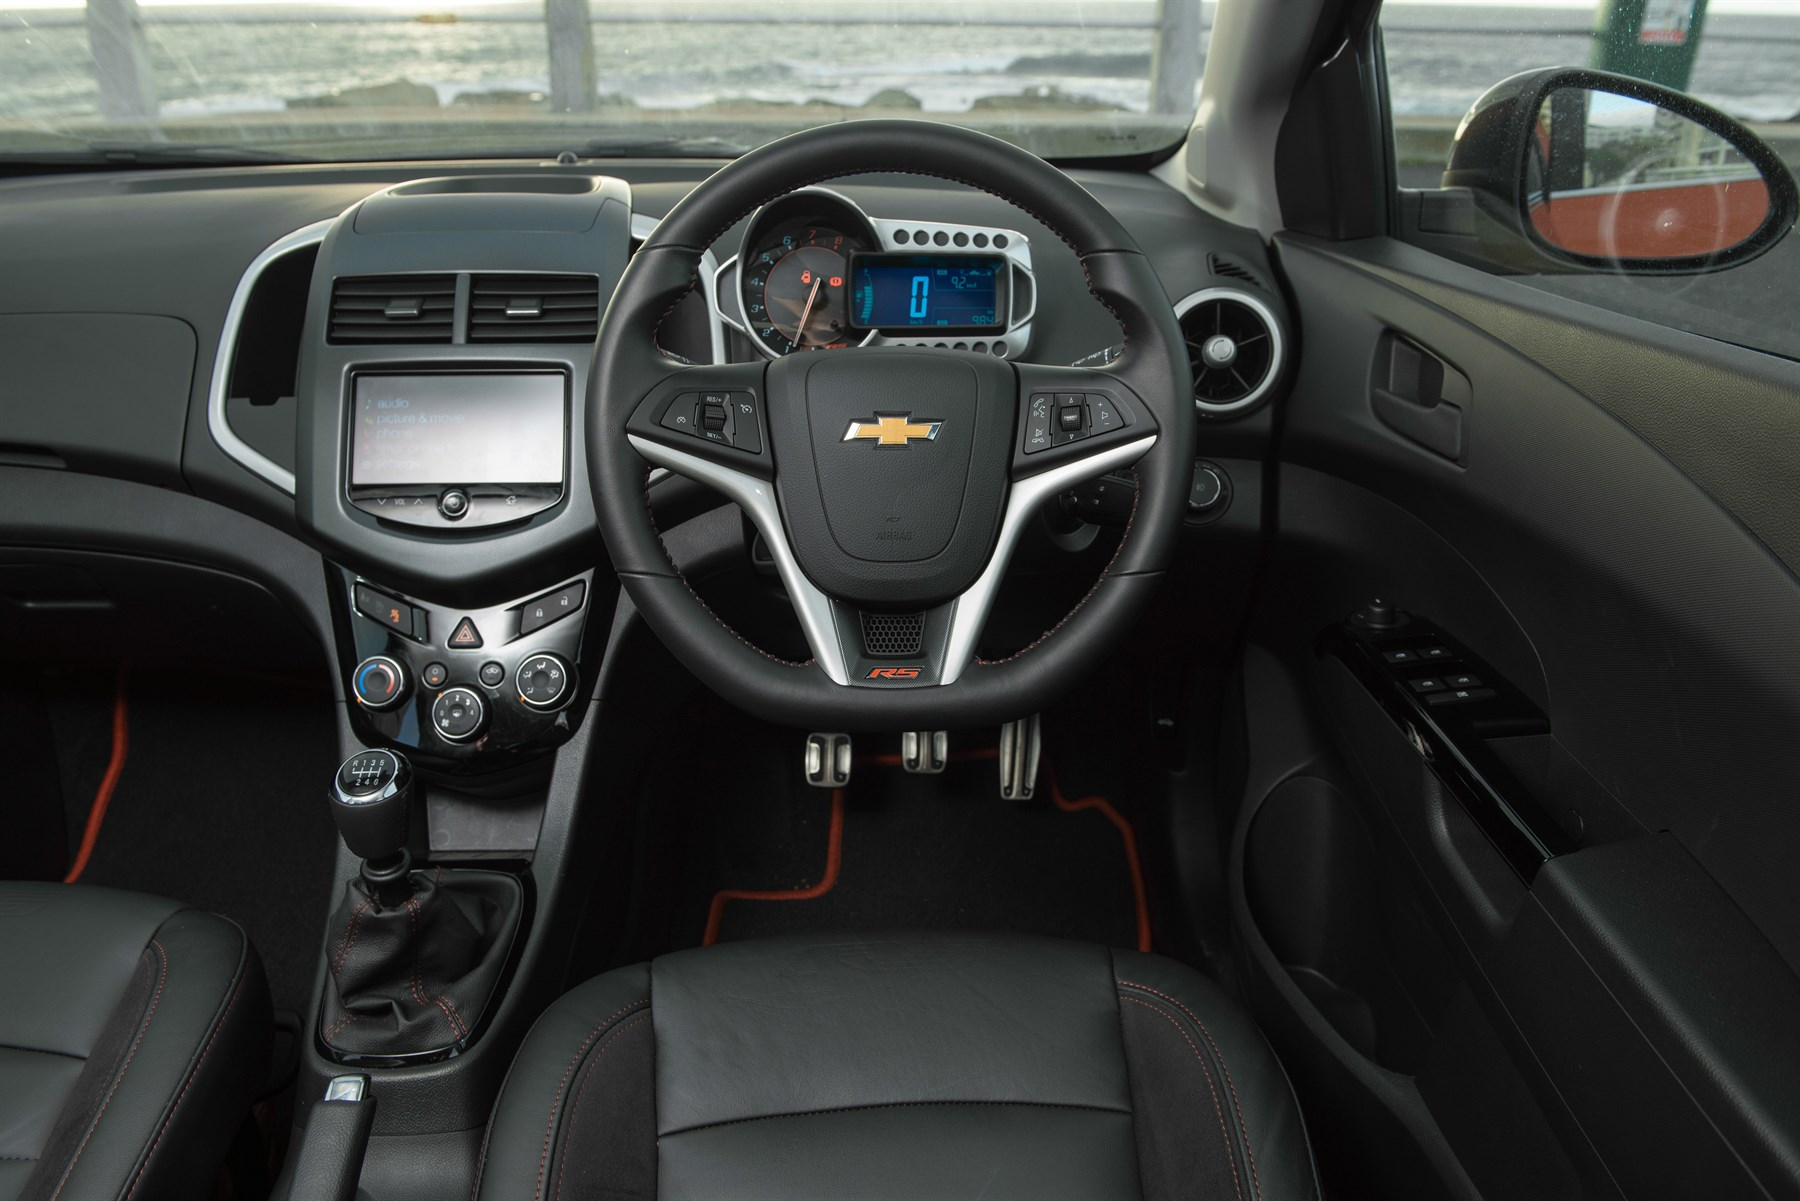 Chevrolet Sonic Rs 2014 New Car Review Surf4cars